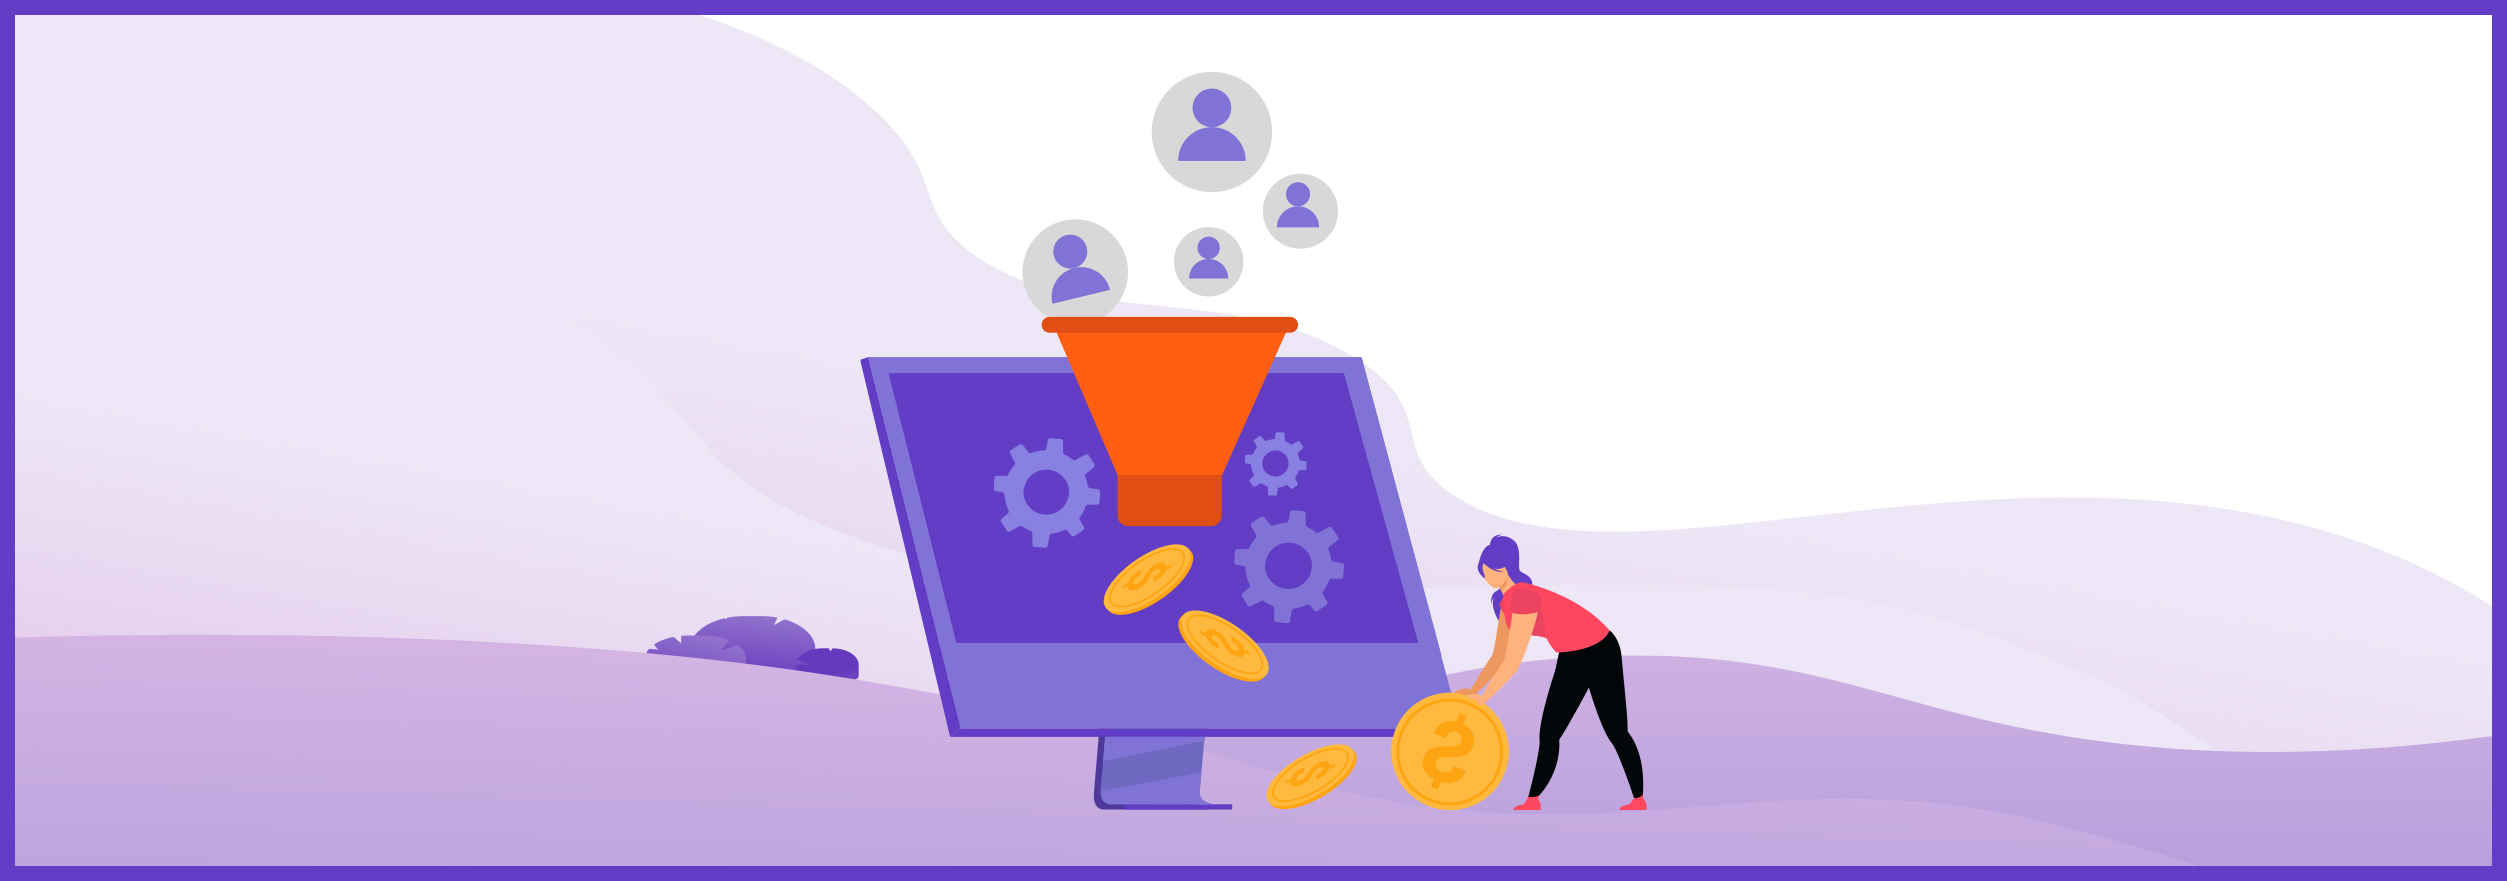 Full funnel marketing: What it is and how to use it